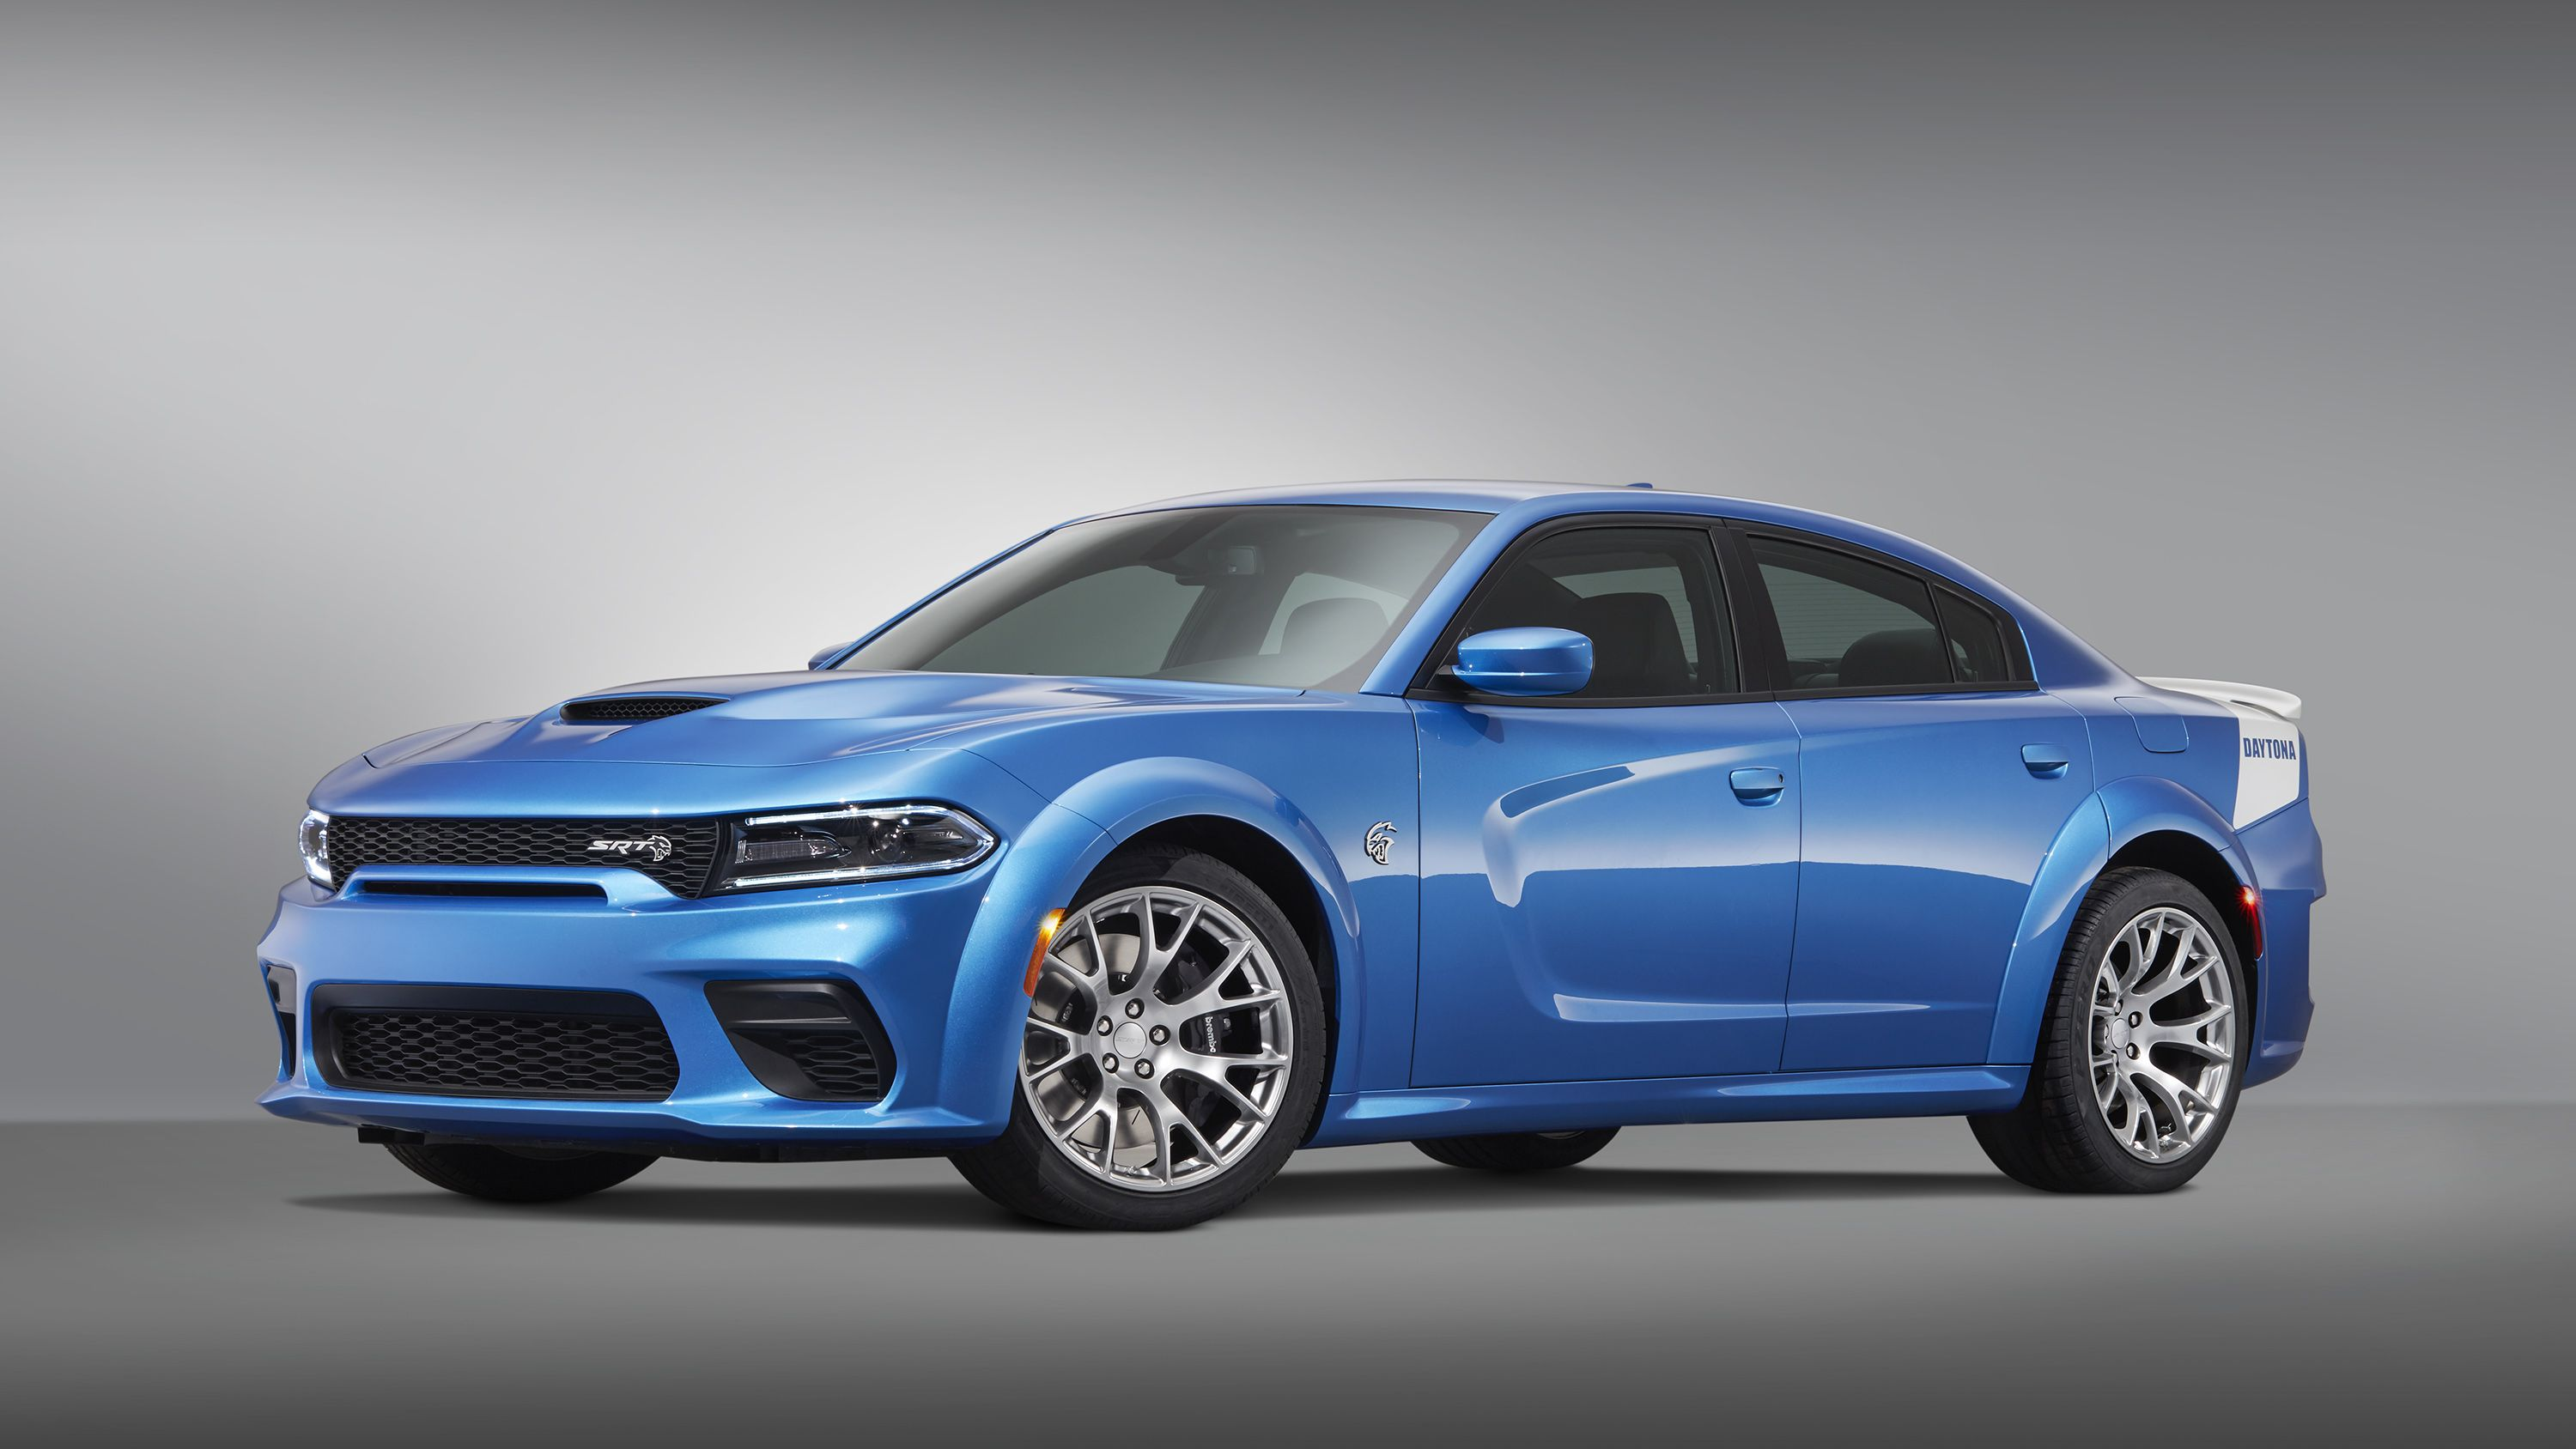 2020 Dodge Charger Srt Daytona Gets A 717 Hp Hellcat V 8